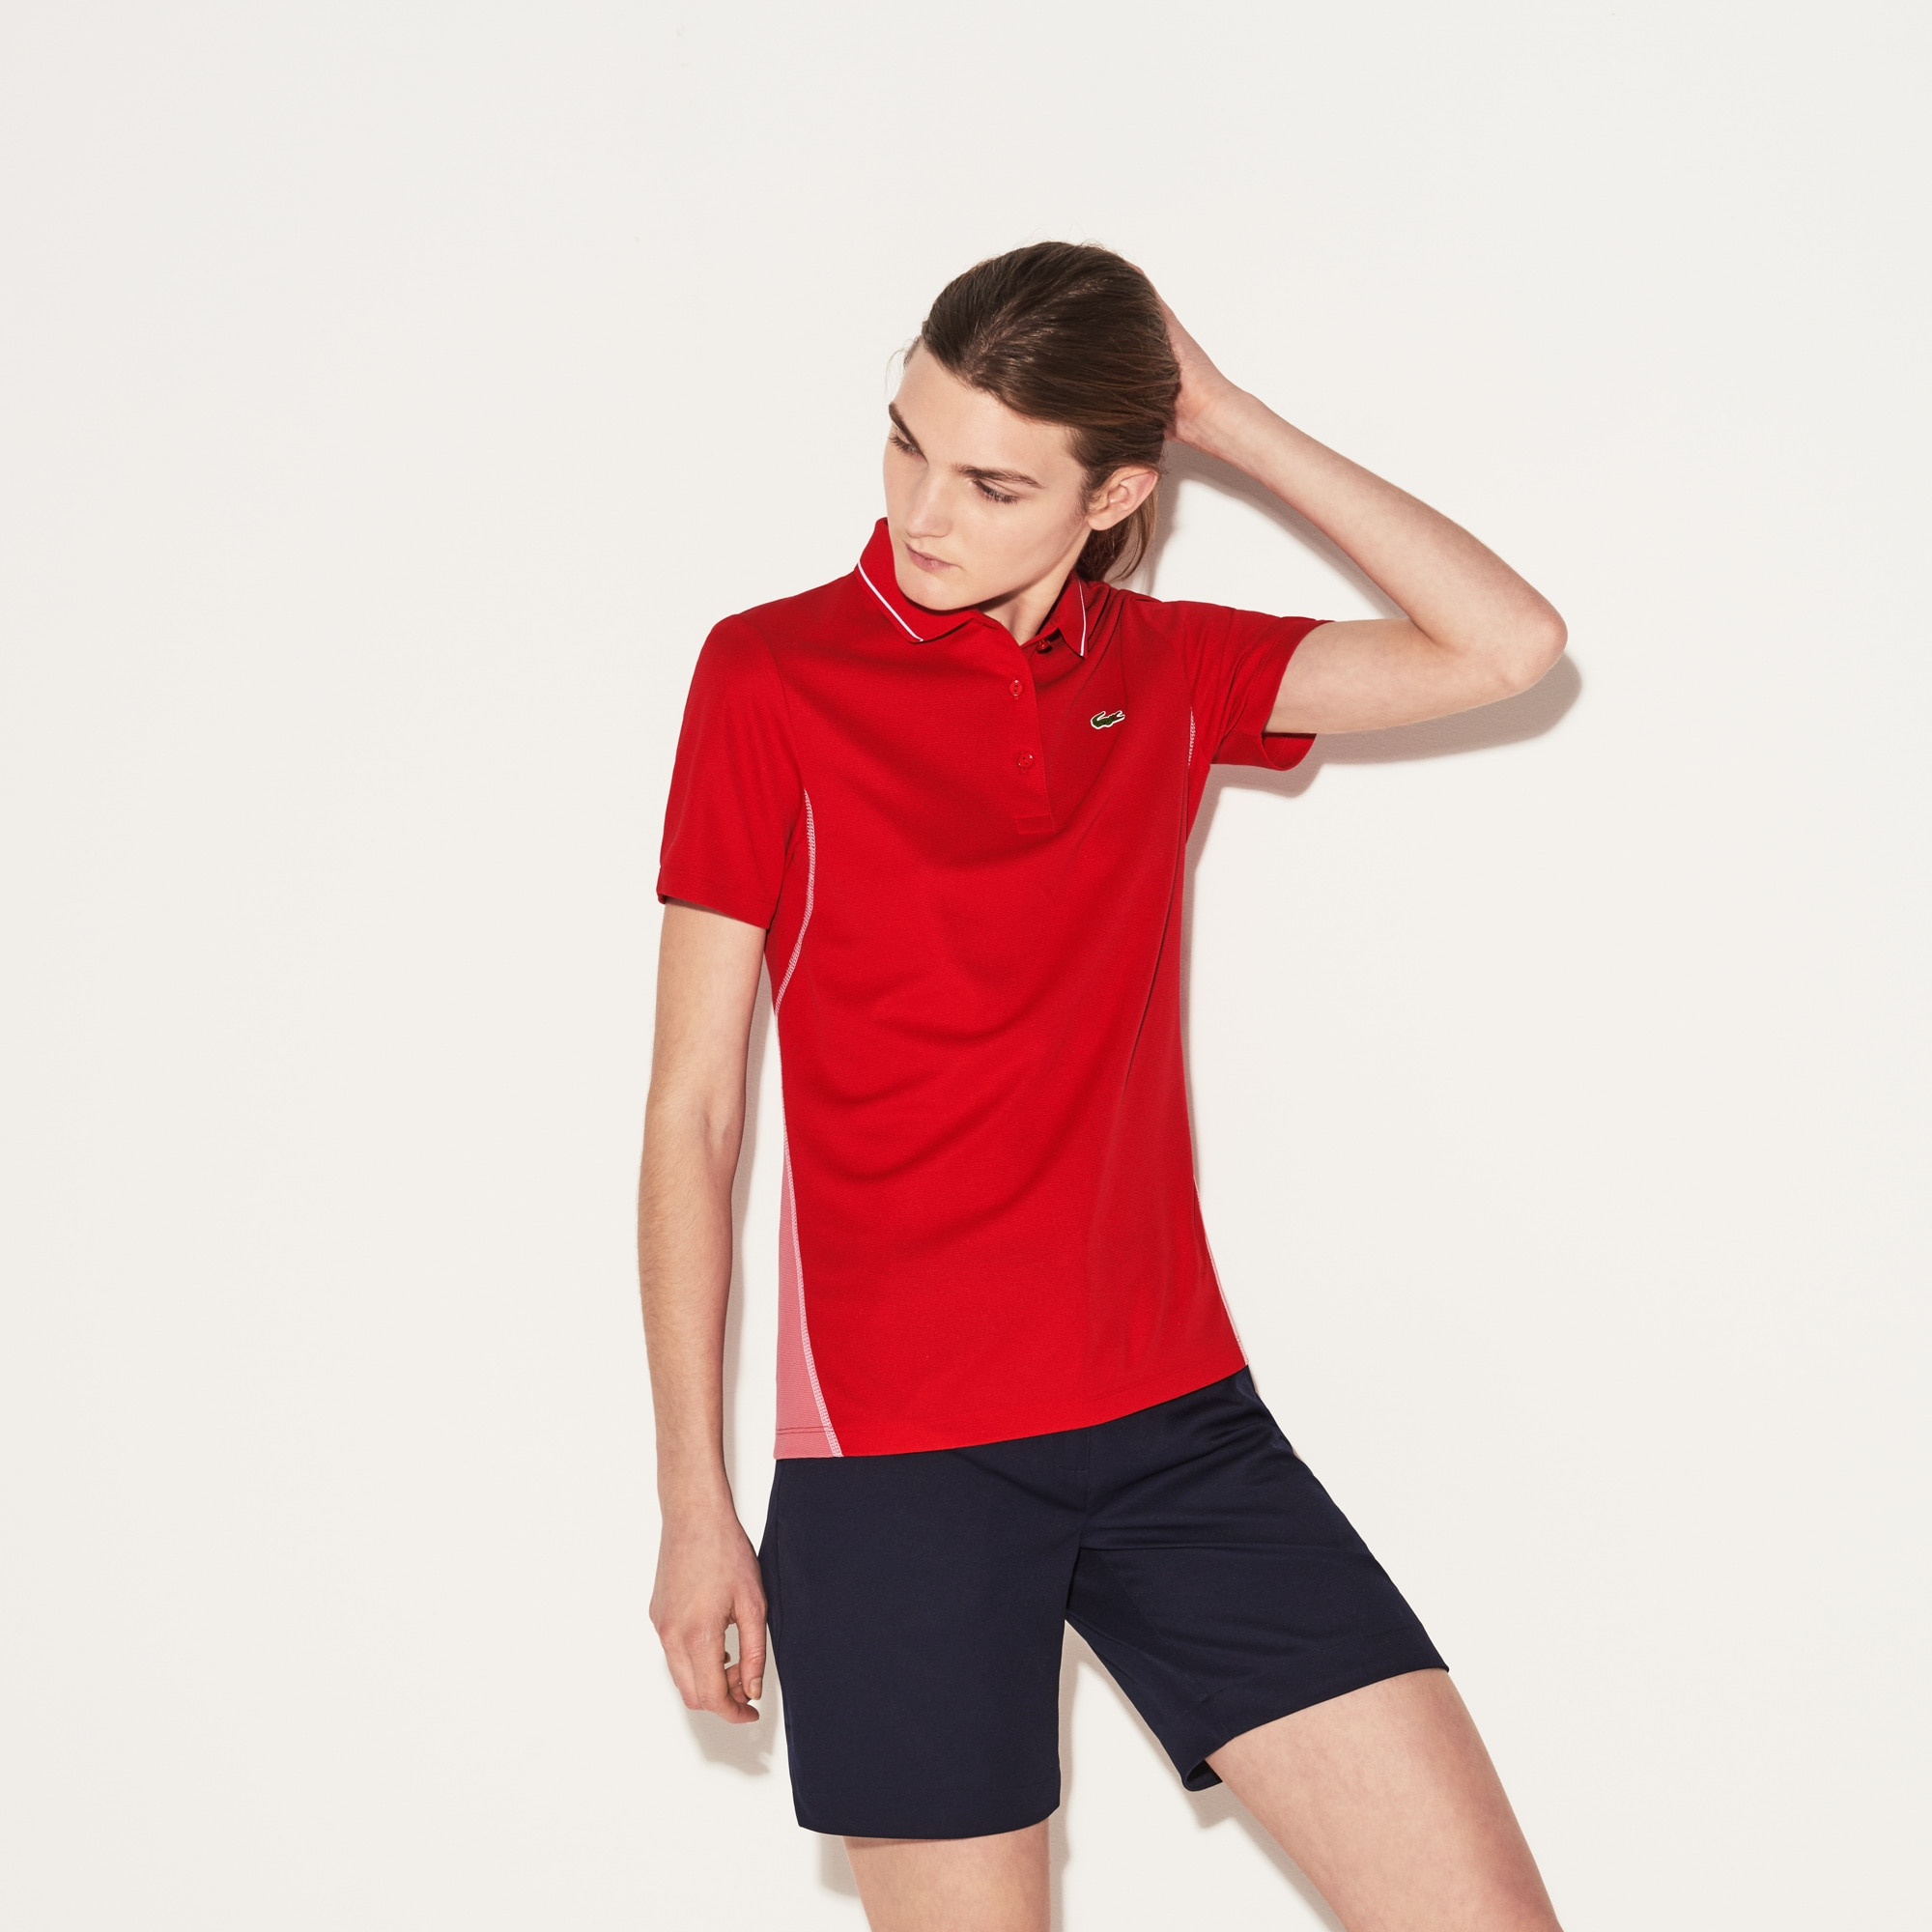 Women's Lacoste SPORT Technical Cotton Knit Golf Polo Shirt